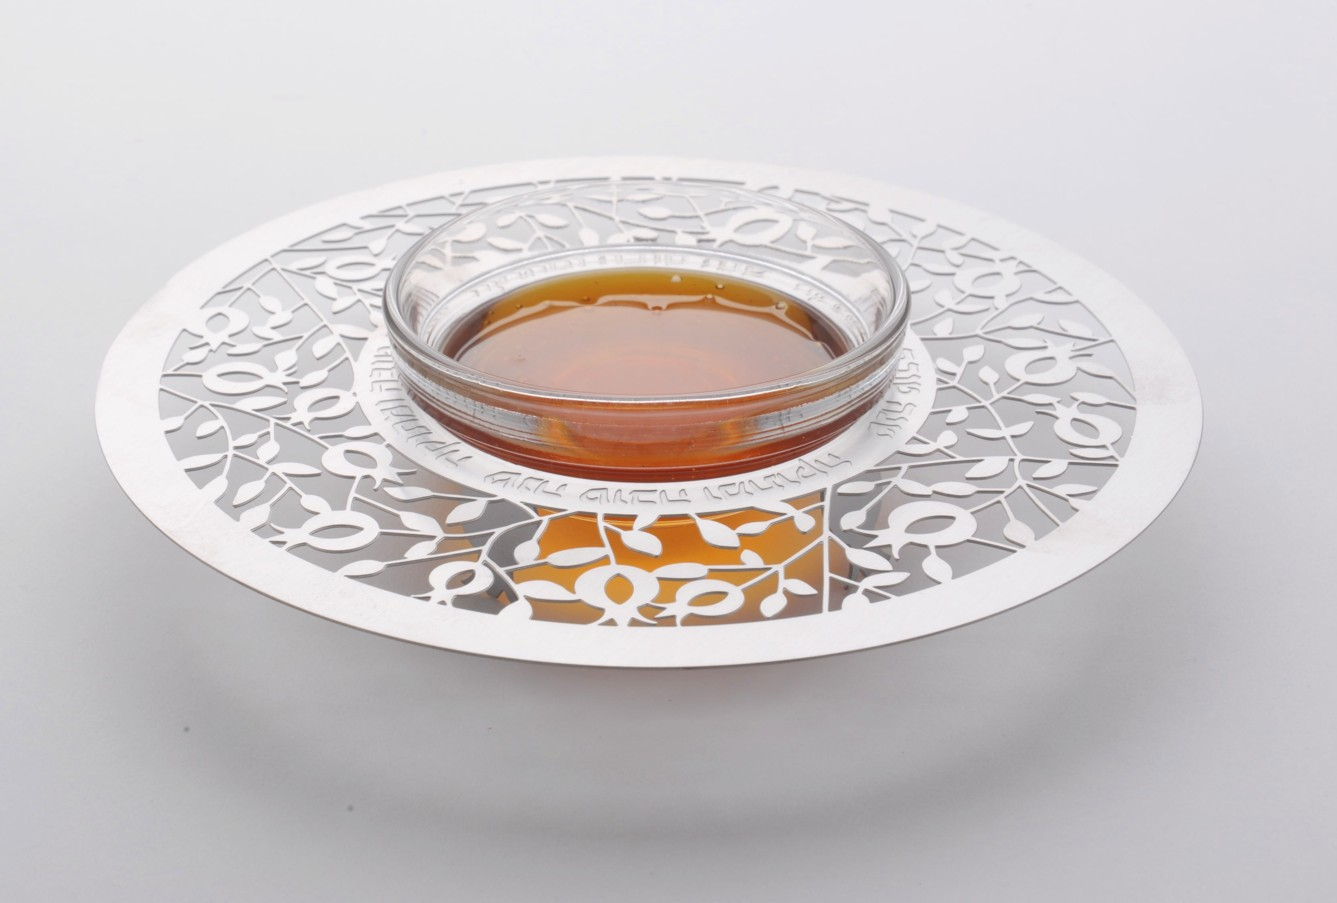 SHAMA TOVA Honey Dish